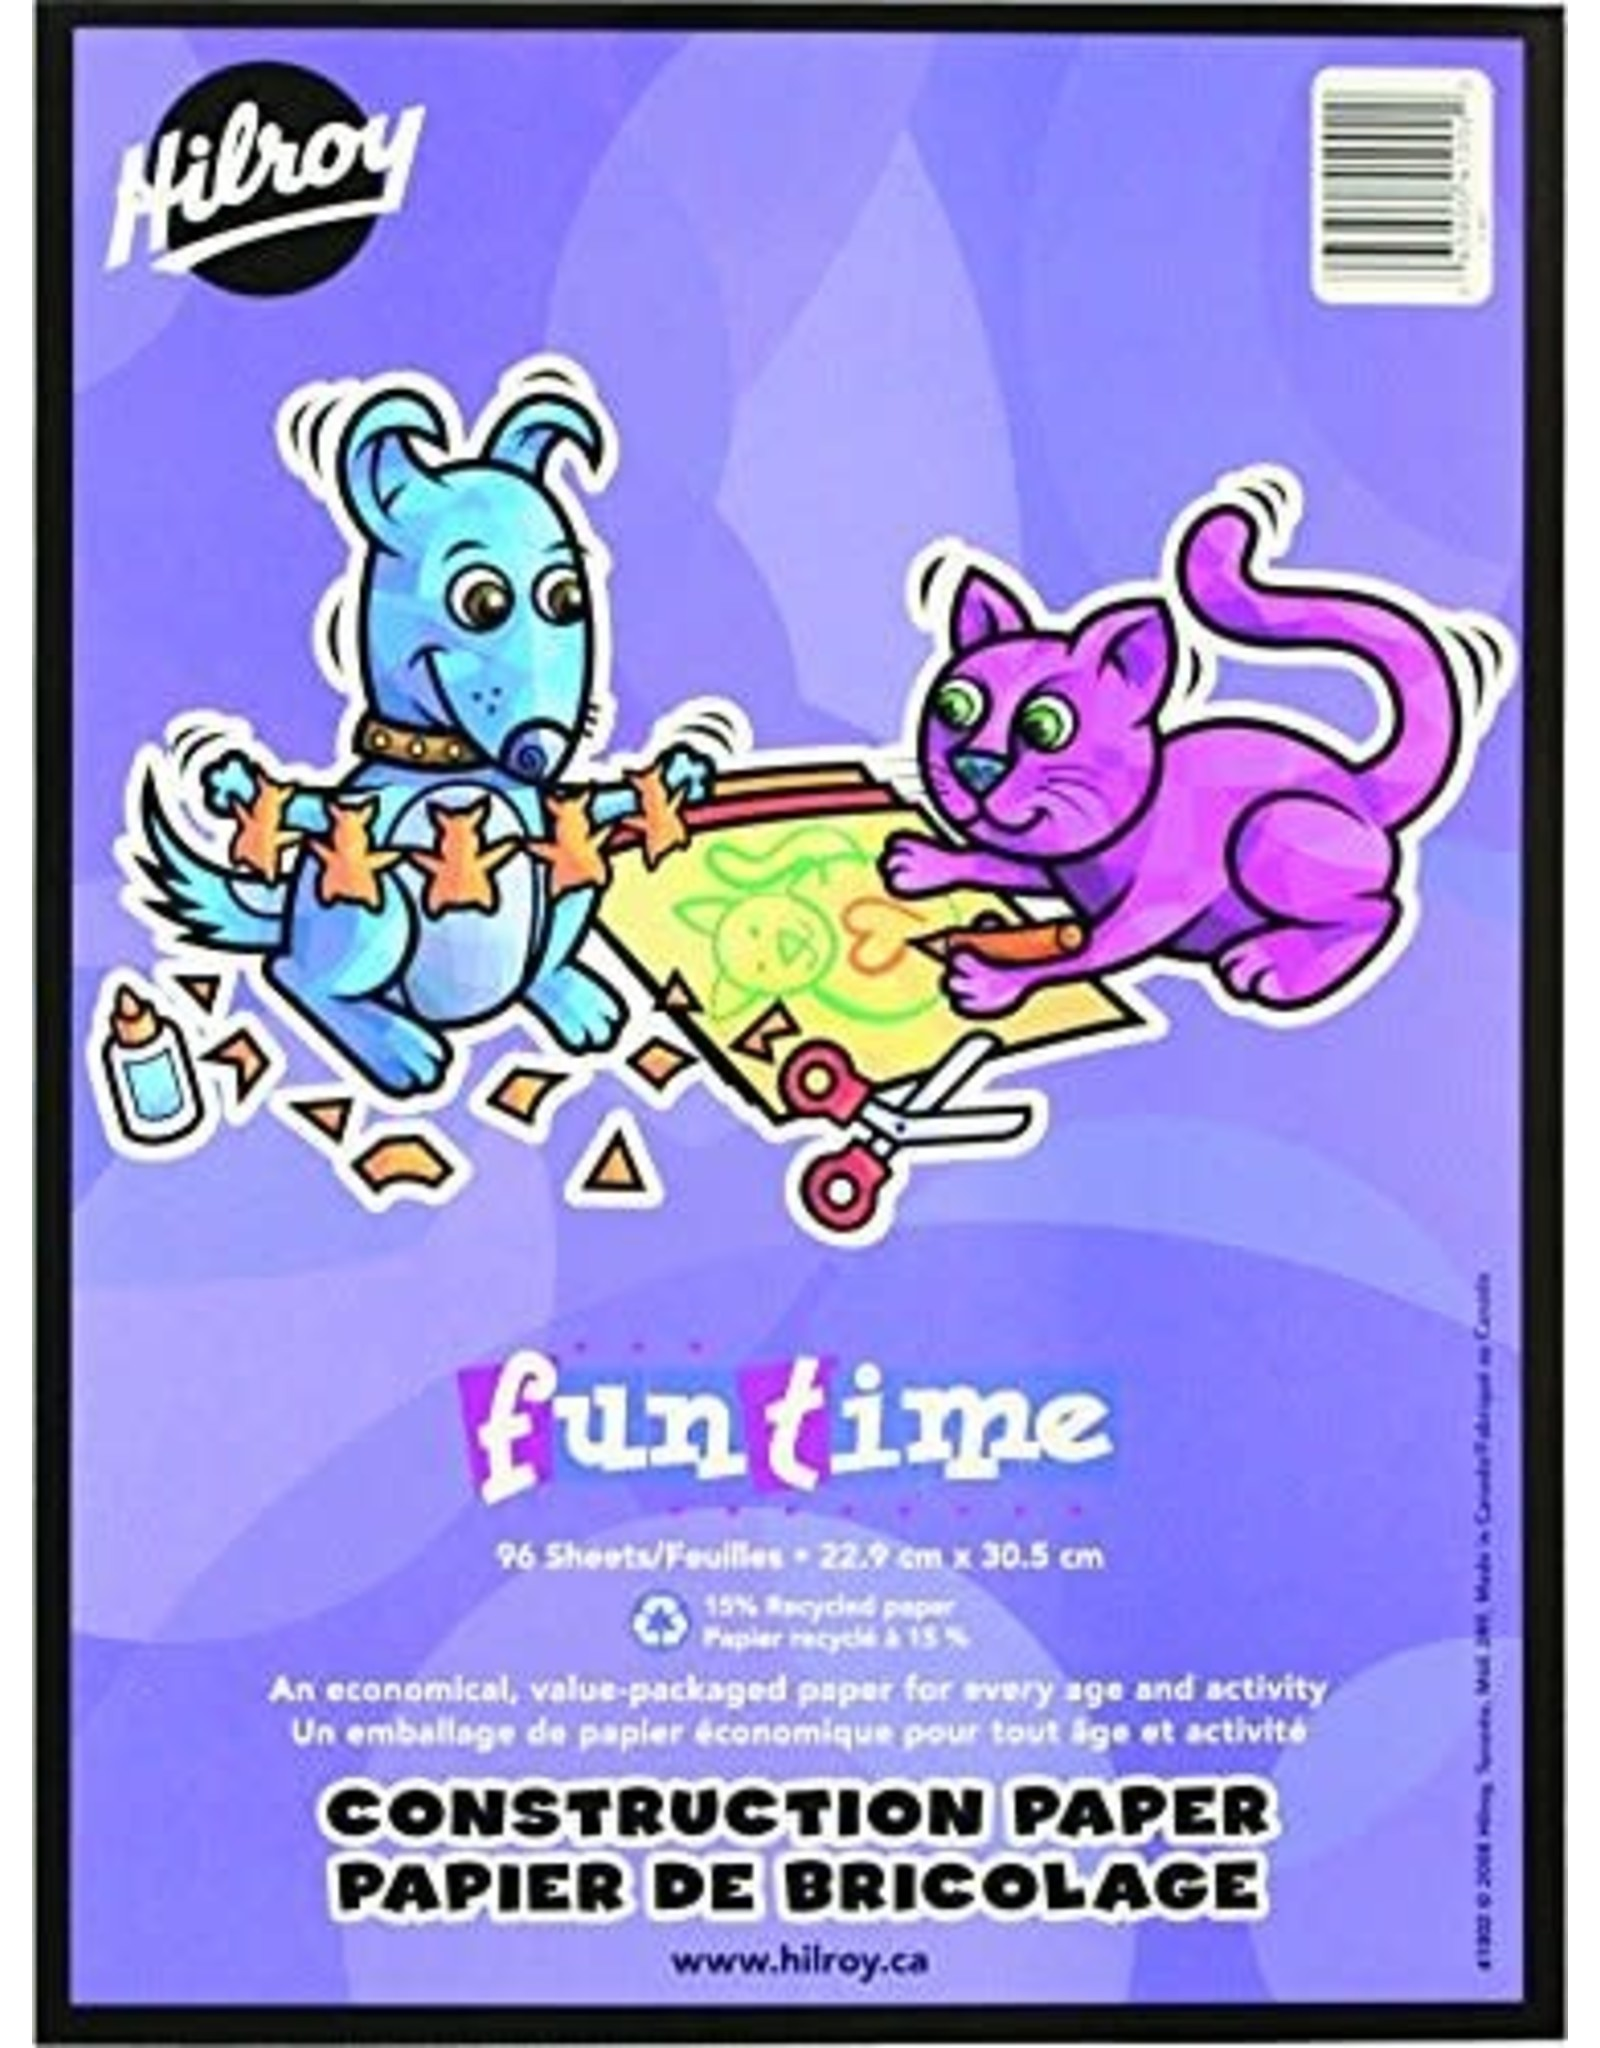 Hilroy CONSTRUCTION PAPER PAD-9X12 FUNTIME  96 SHEET